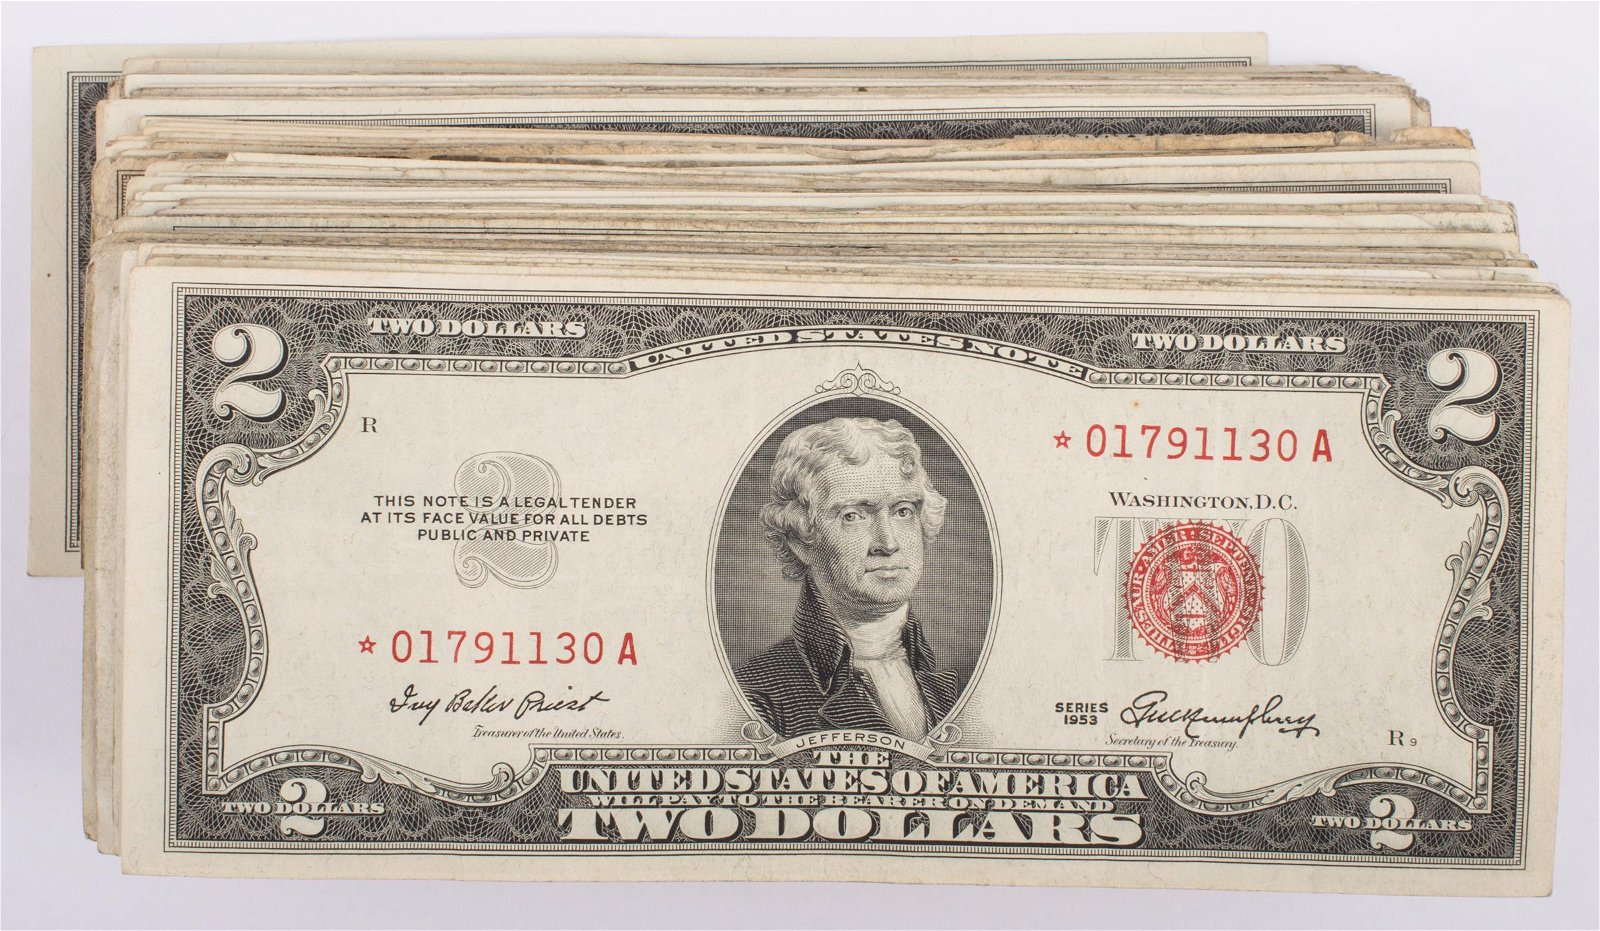 $2 UNITED STATES RED SEAL NOTES (177)